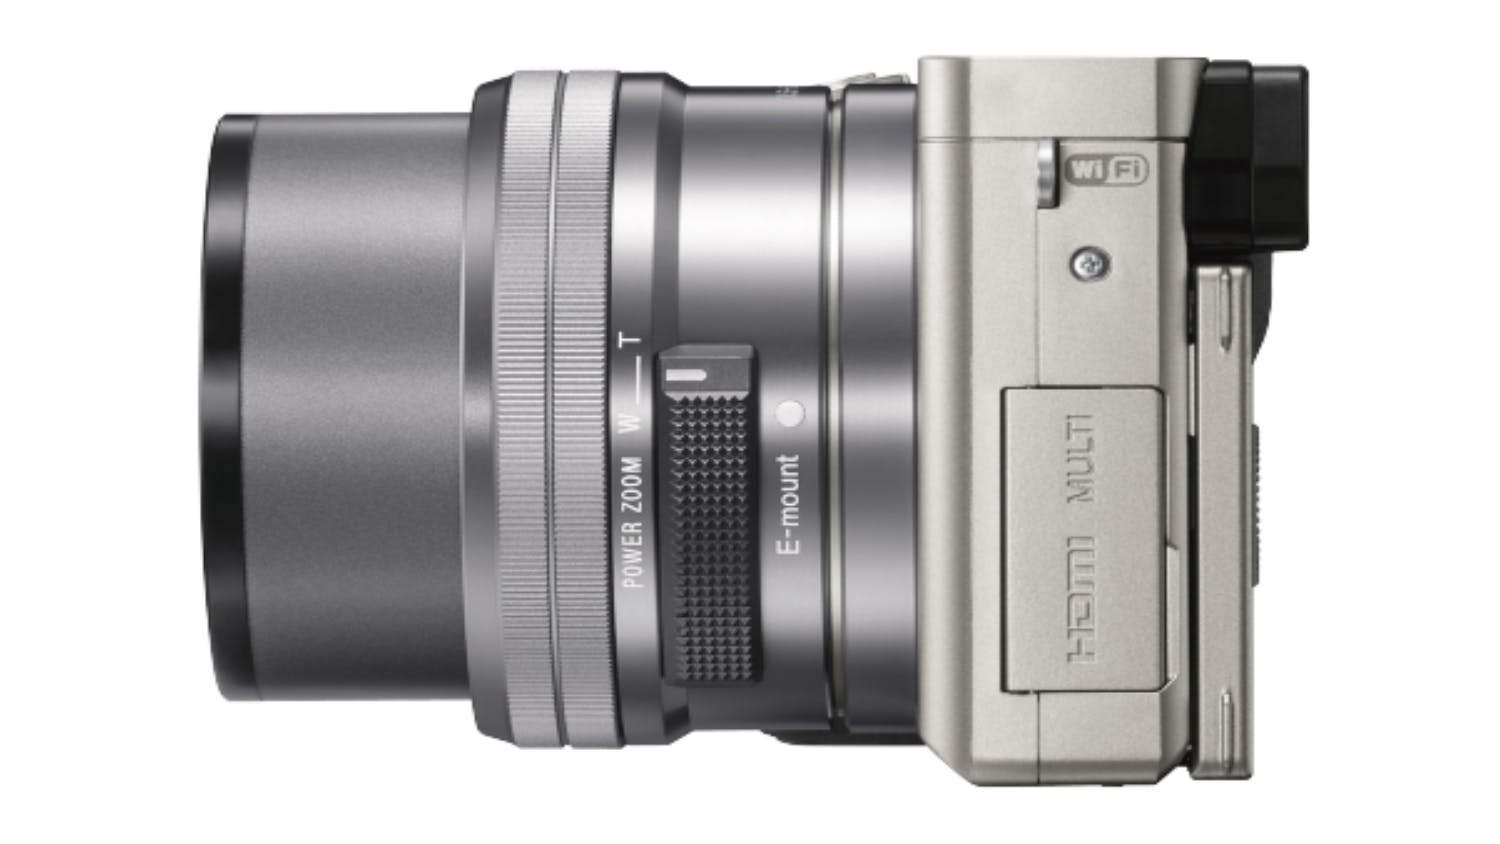 Sony Alpha 6000 243mp Hd Interchangeable Camera With 16 50mm Lens A6000 Kit 50 Dslm Silver 1013187 Wishlist Compare